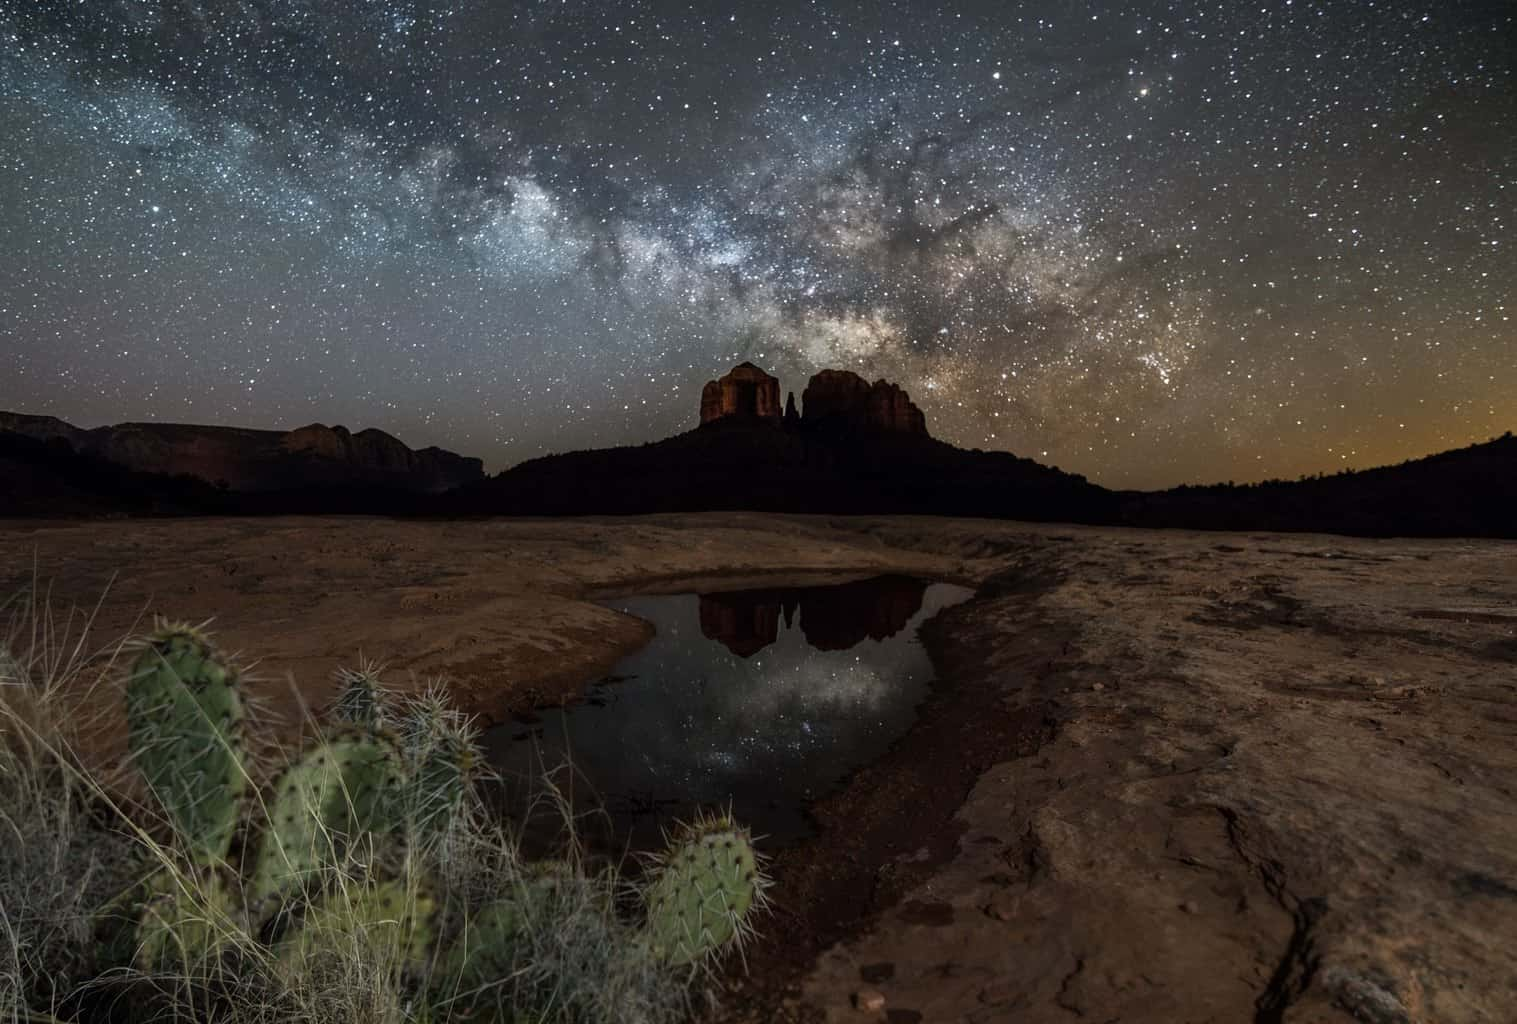 Relatively warm nights meant last night was a great time to go out and shoot the Milky Way for the first time this season. It is rising about an hour and a half or so before sunrise. This was taken in Sedona, AZ.